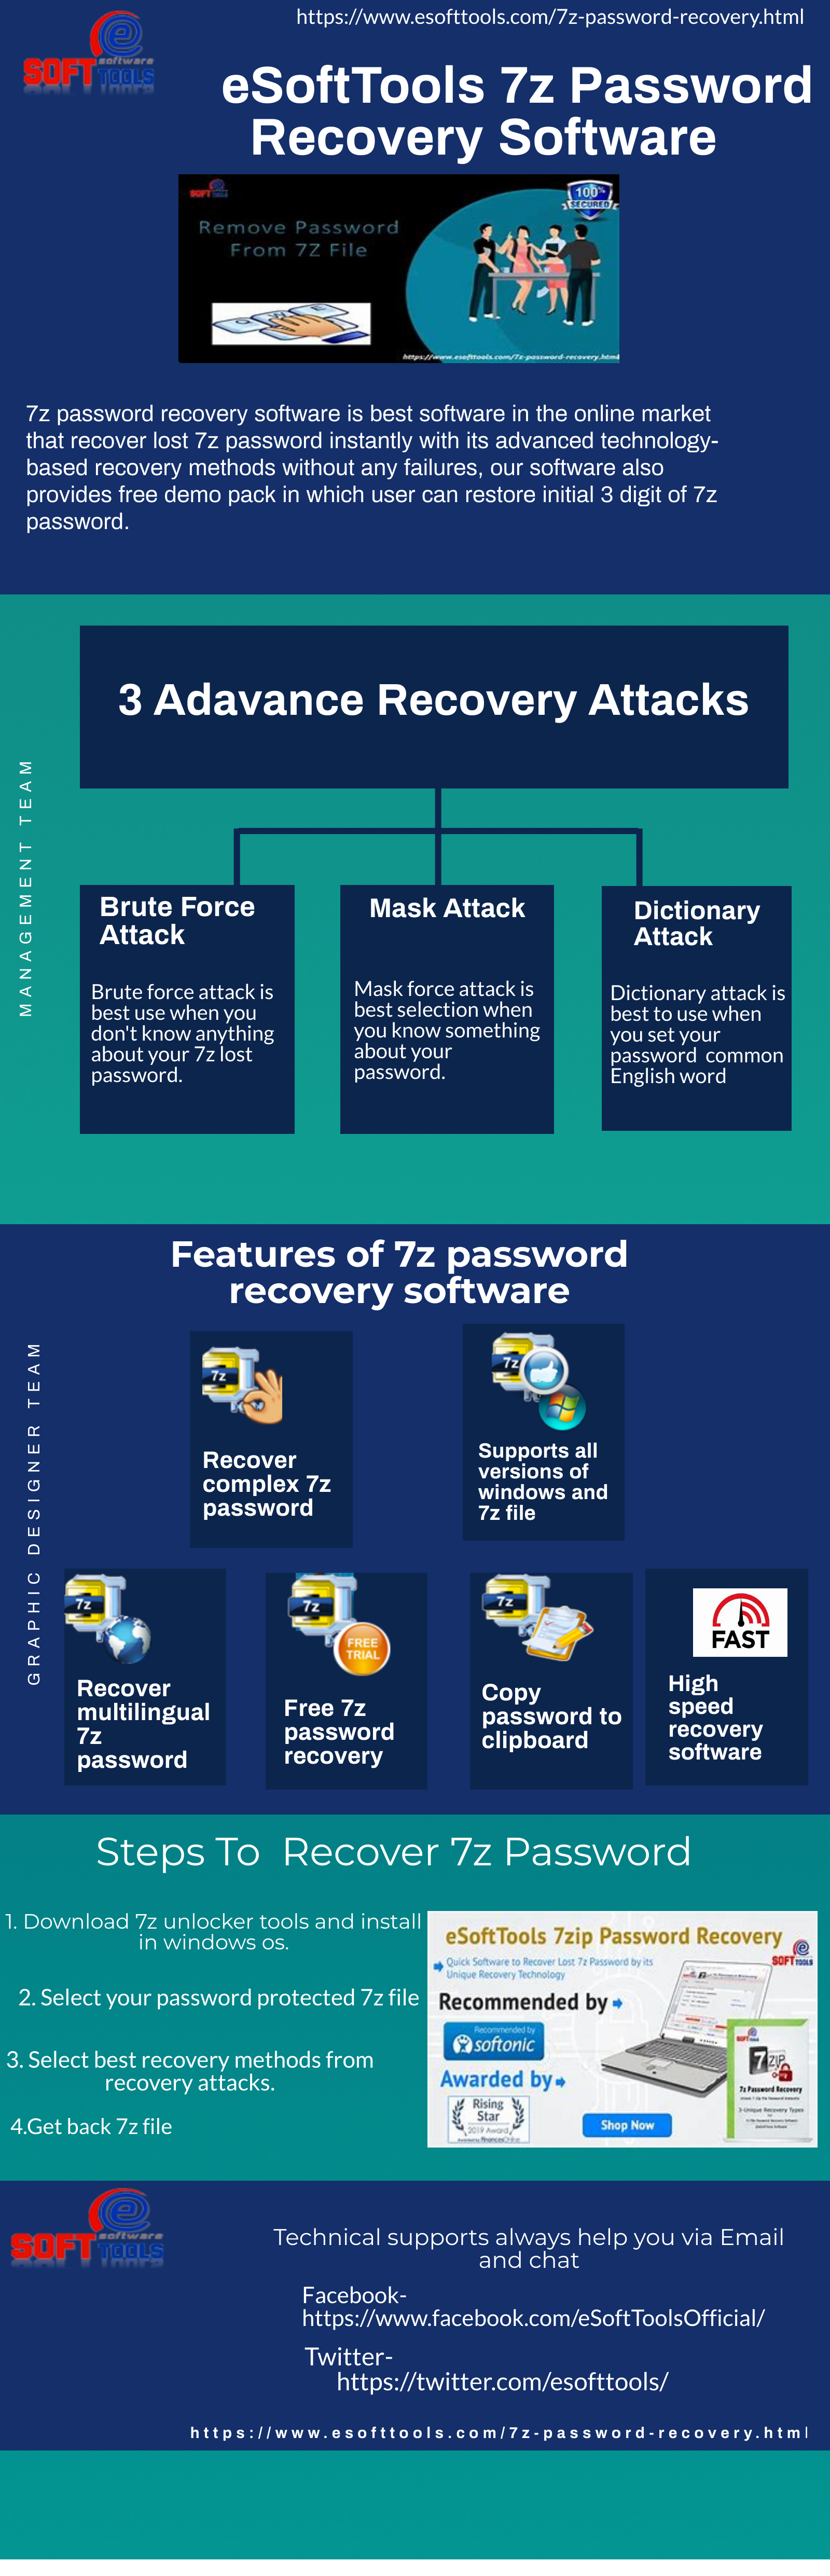 How to recover the password from 7z file?